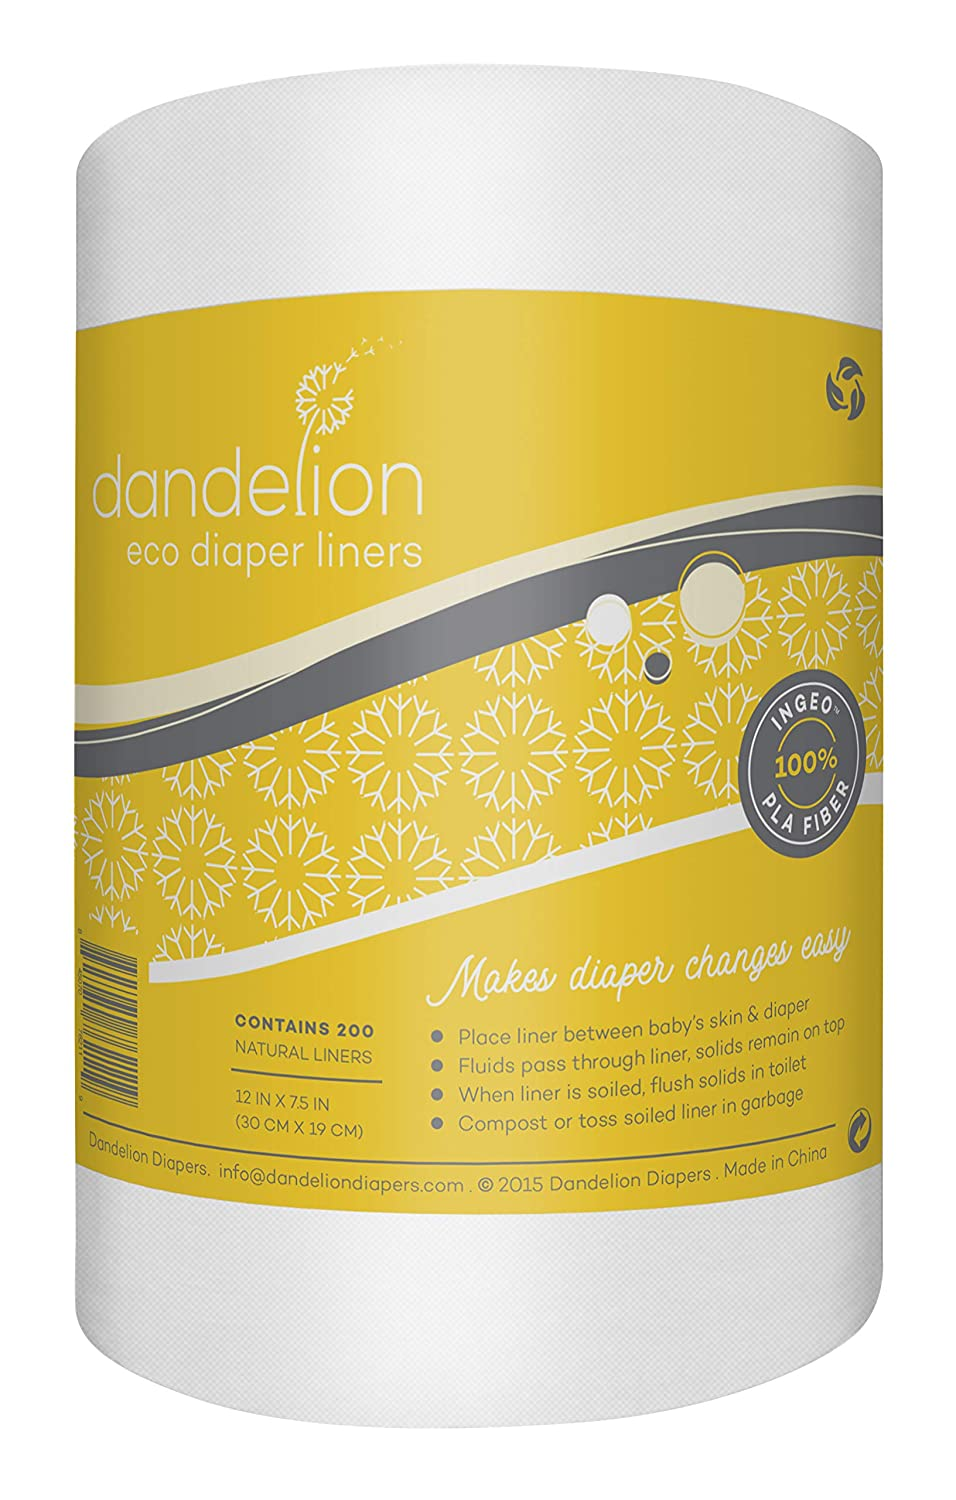 Dandelion Diapers 100/% Bamboo Diaper Liner Inserts Chlorine-Free and Dye-Free 100 Sheets Box Biodegradable Unscented Gentle and Soft for Baby Skin